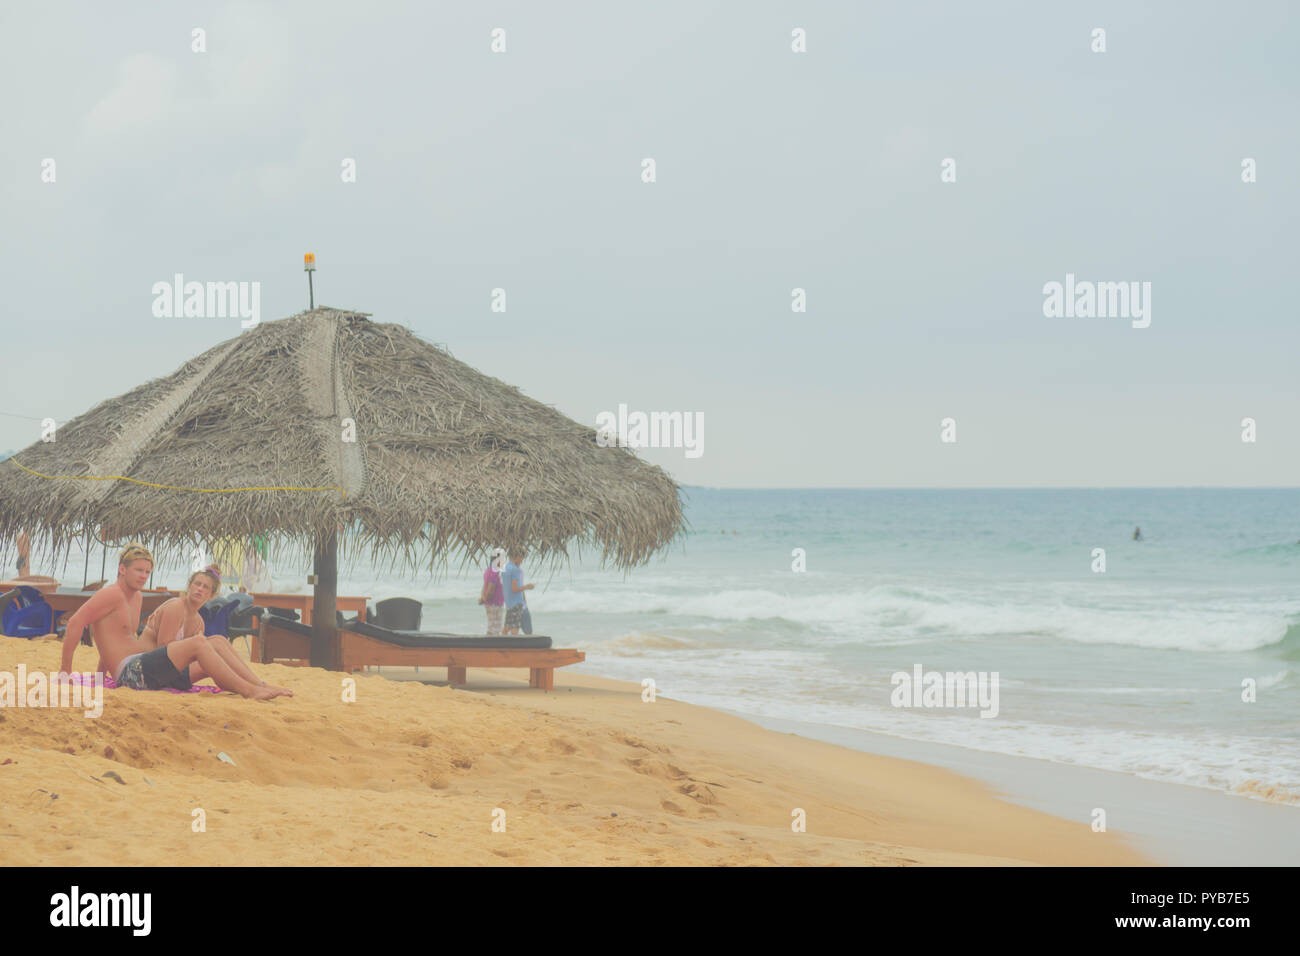 Palm trees, yellow sand and blue ocean in Sri Lanka. Stock Photo